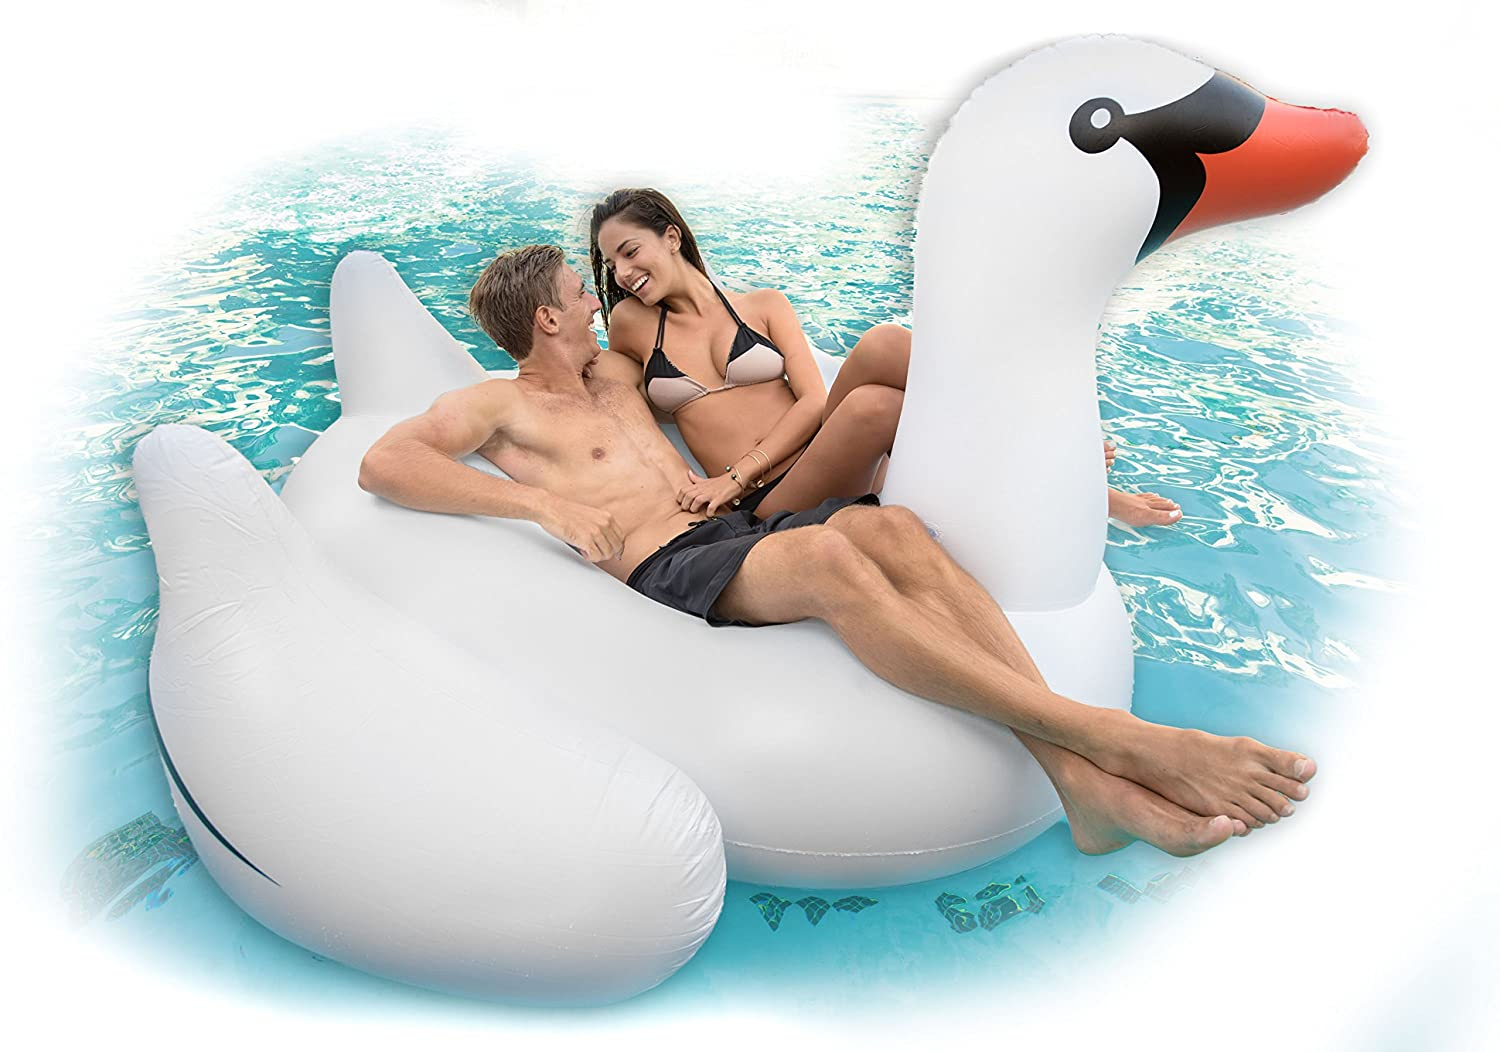 amazon com black swans sister giant inflatable swan pool float amazon com black swans sister giant inflatable swan pool float pump toys games